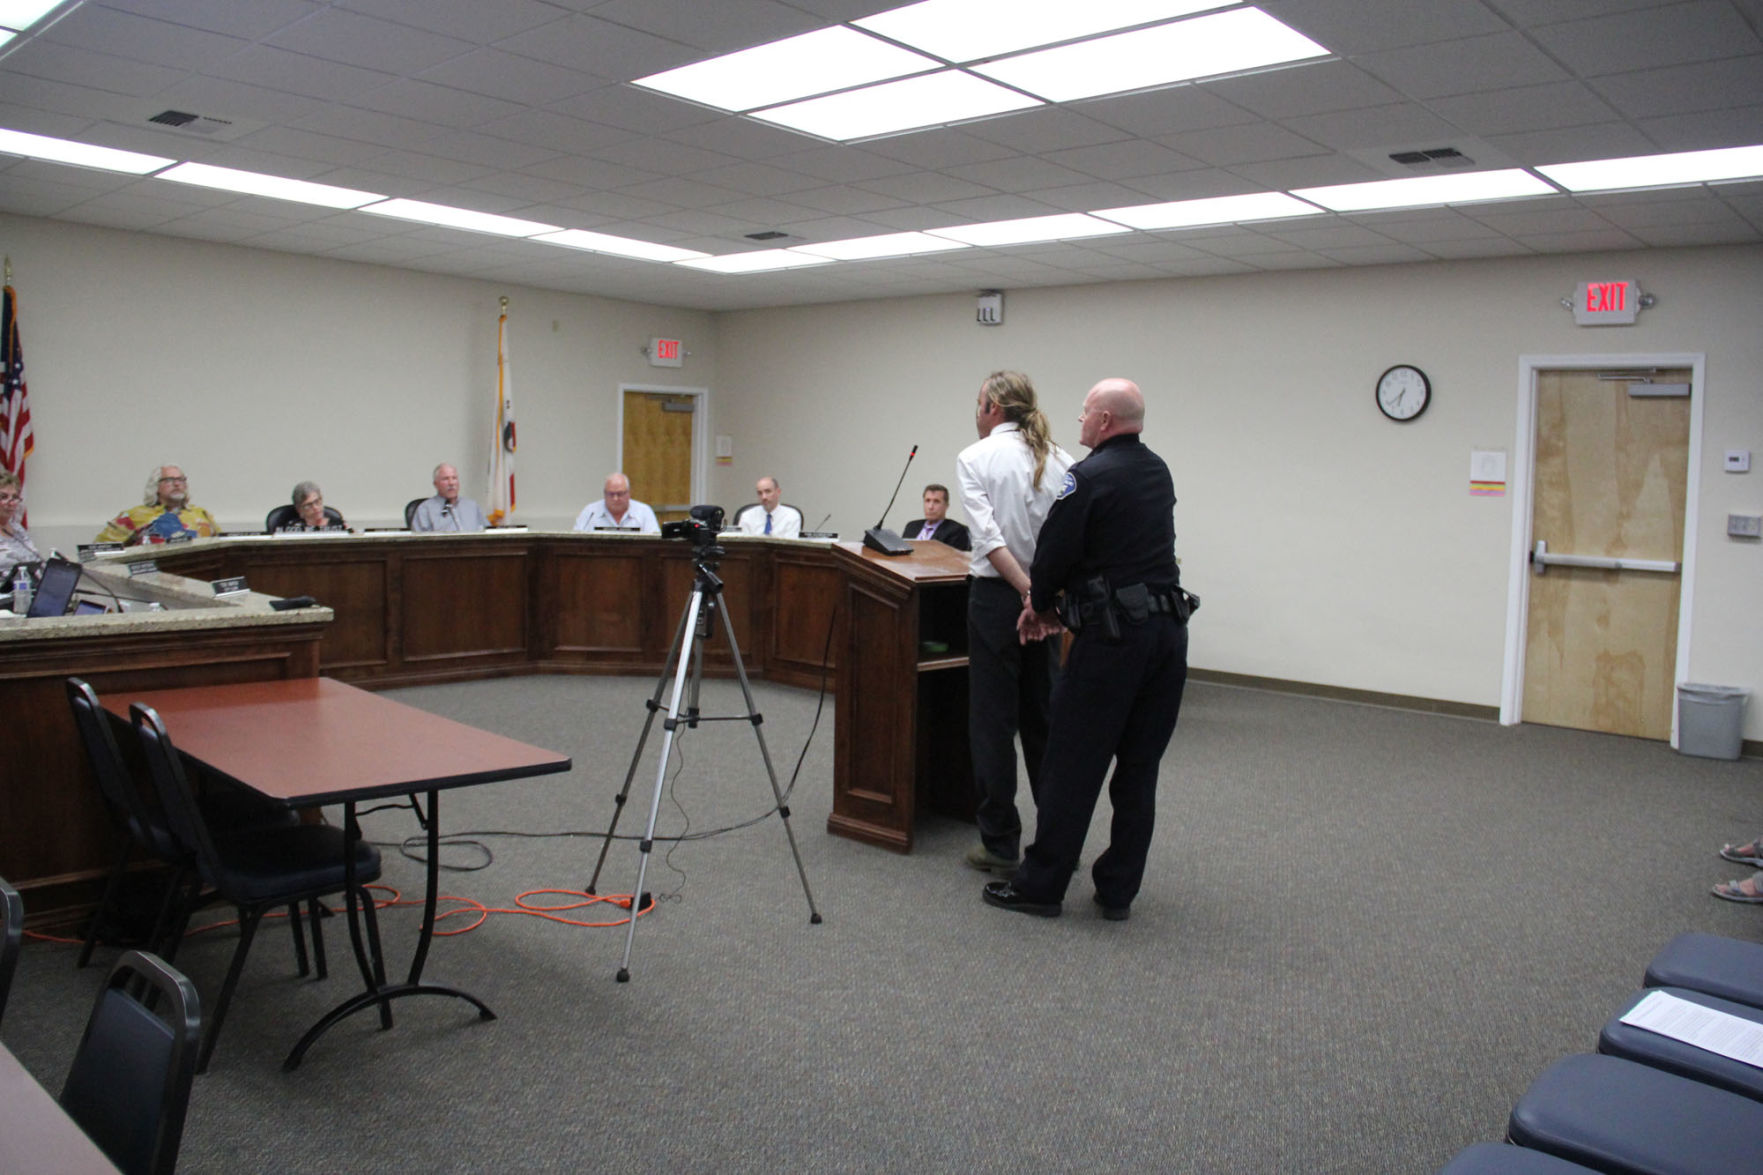 Sparks fly — and a former Tehachapi City Council candidate is arrested — during public comment